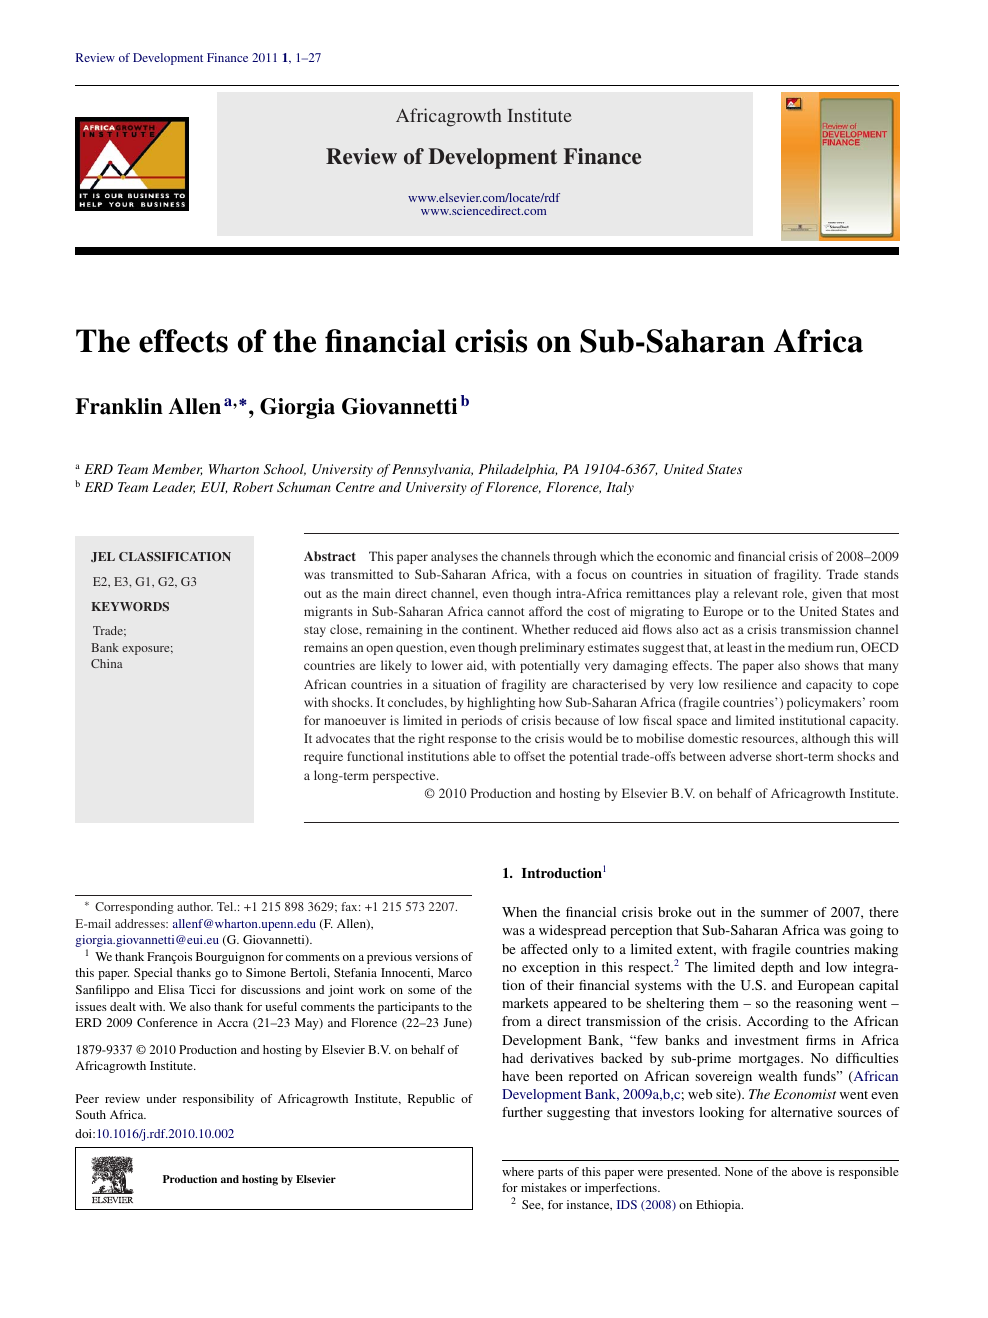 The effects of the financial crisis on Sub-Saharan Africa